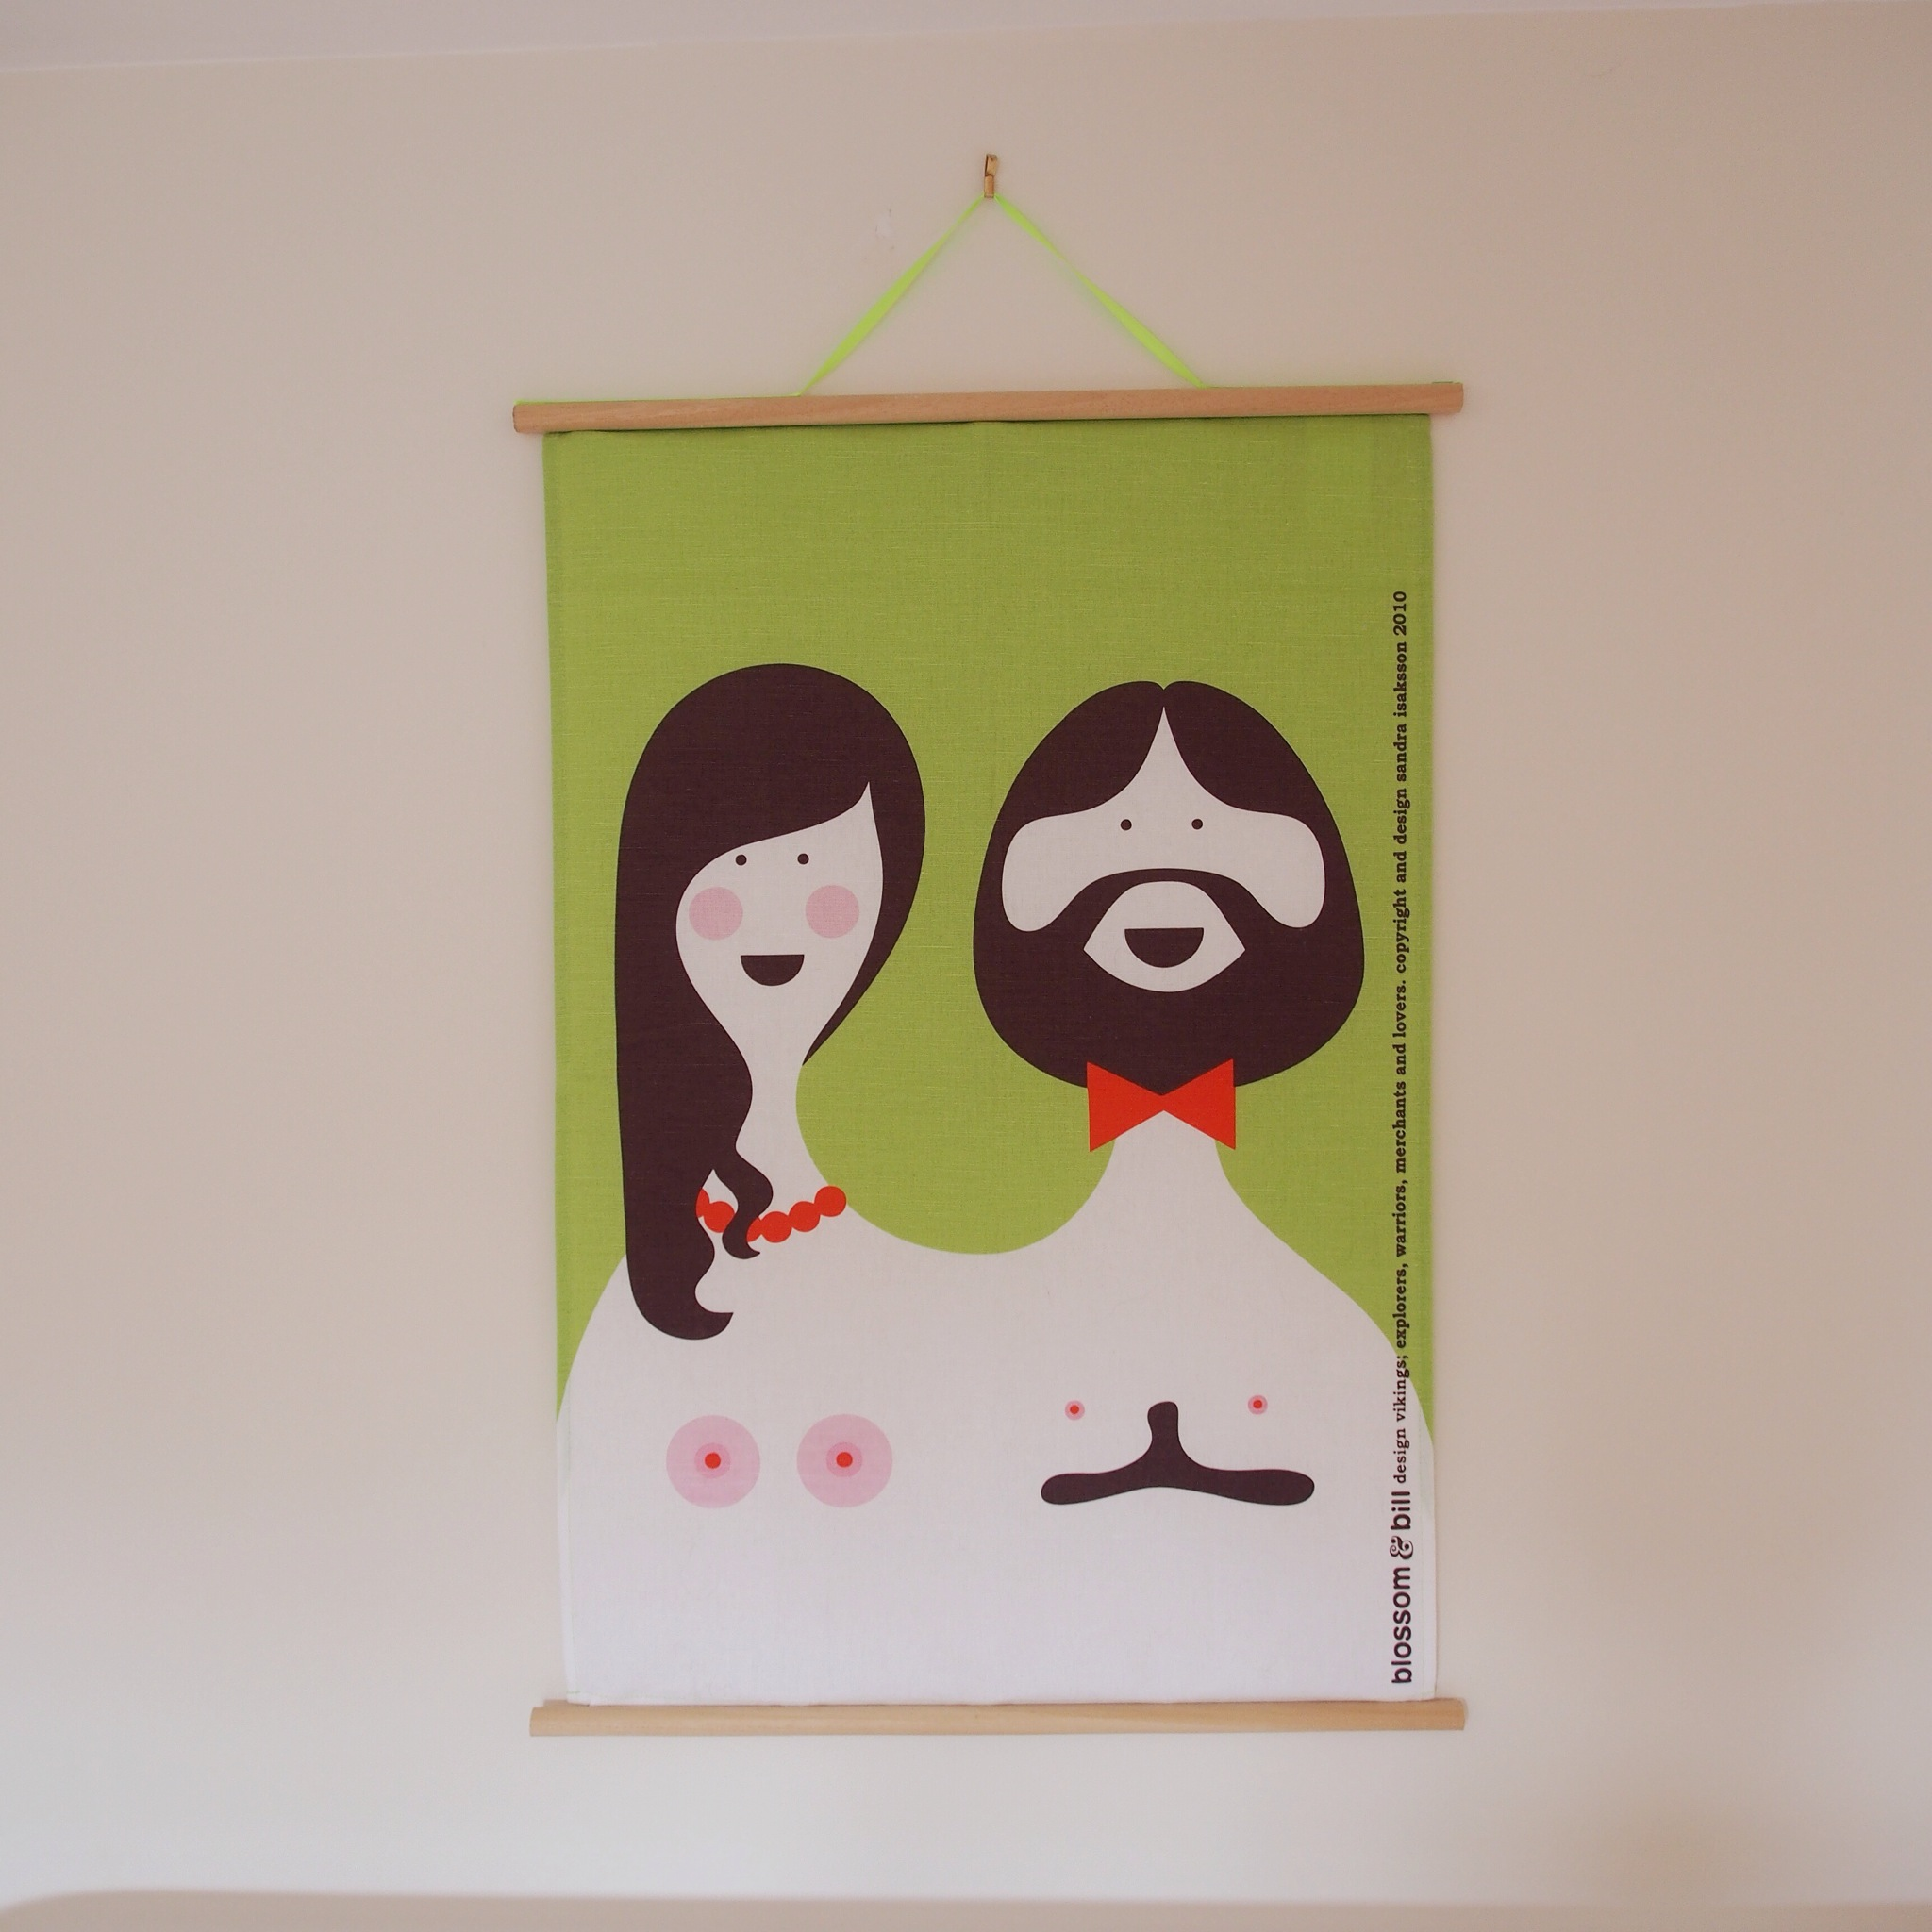 Tea towel frame DIY